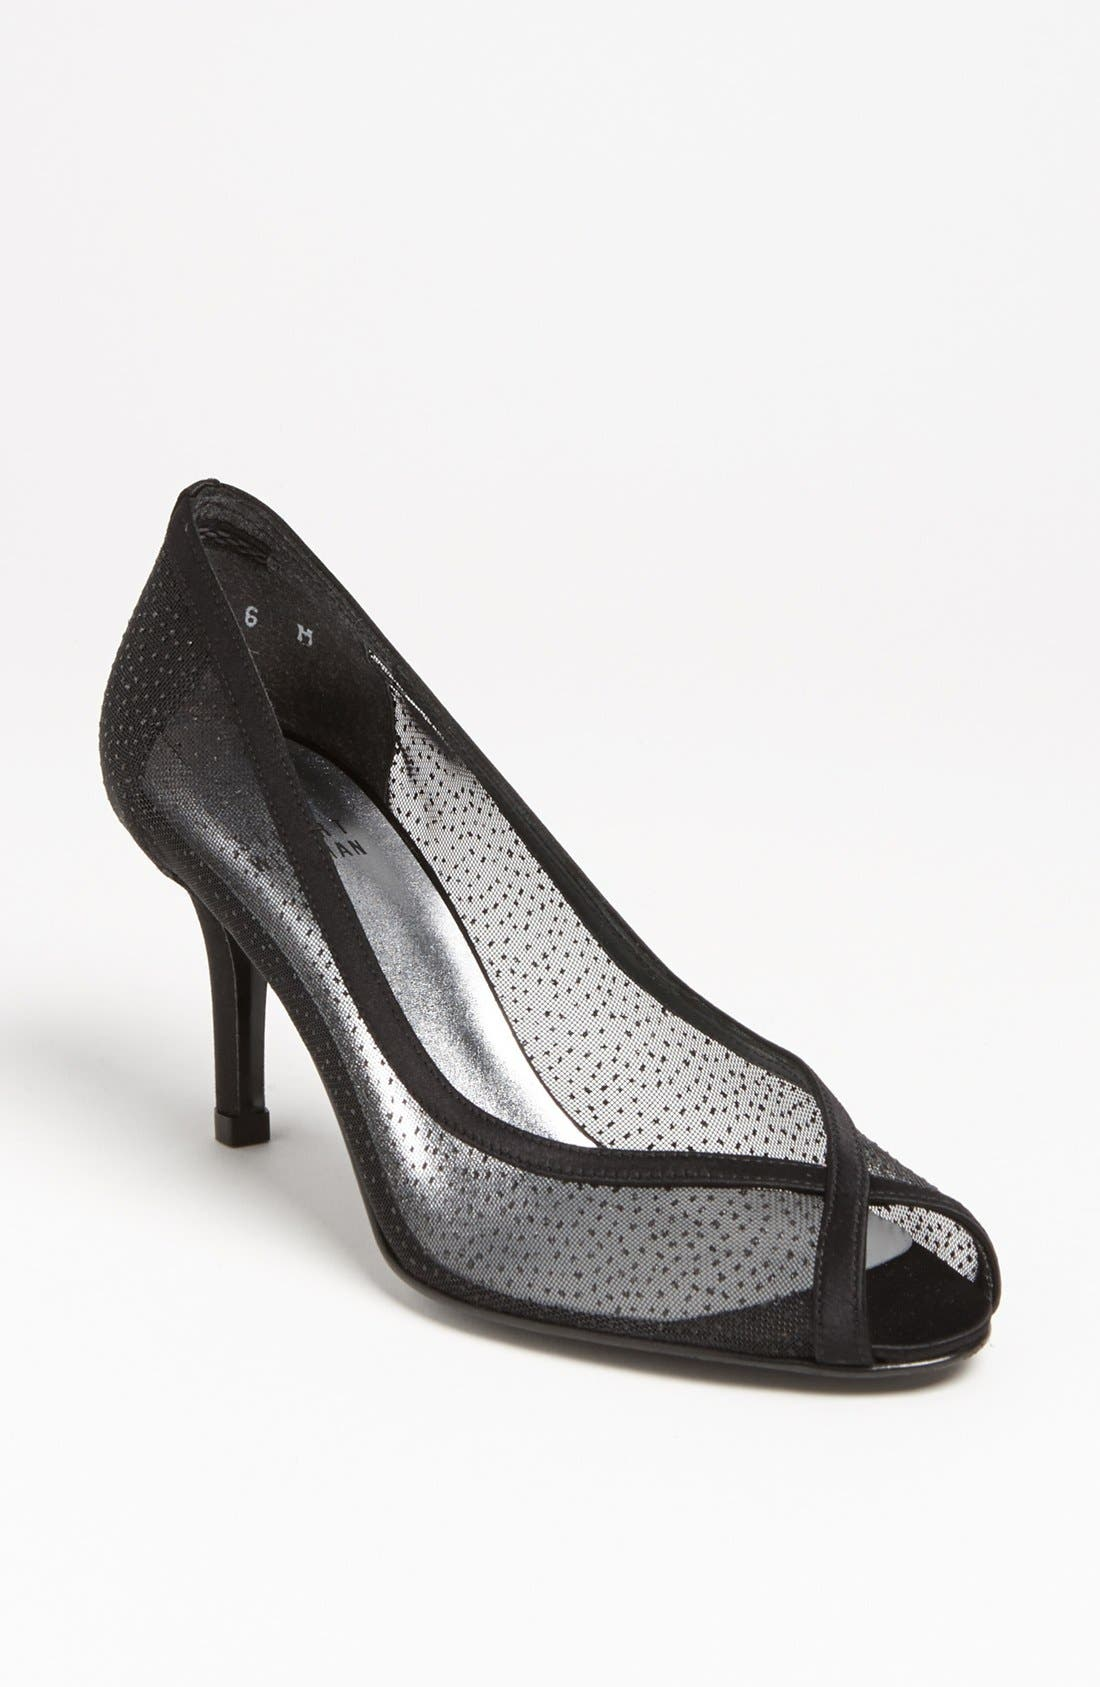 Alternate Image 1 Selected - Stuart Weitzman 'Laceola' Pump